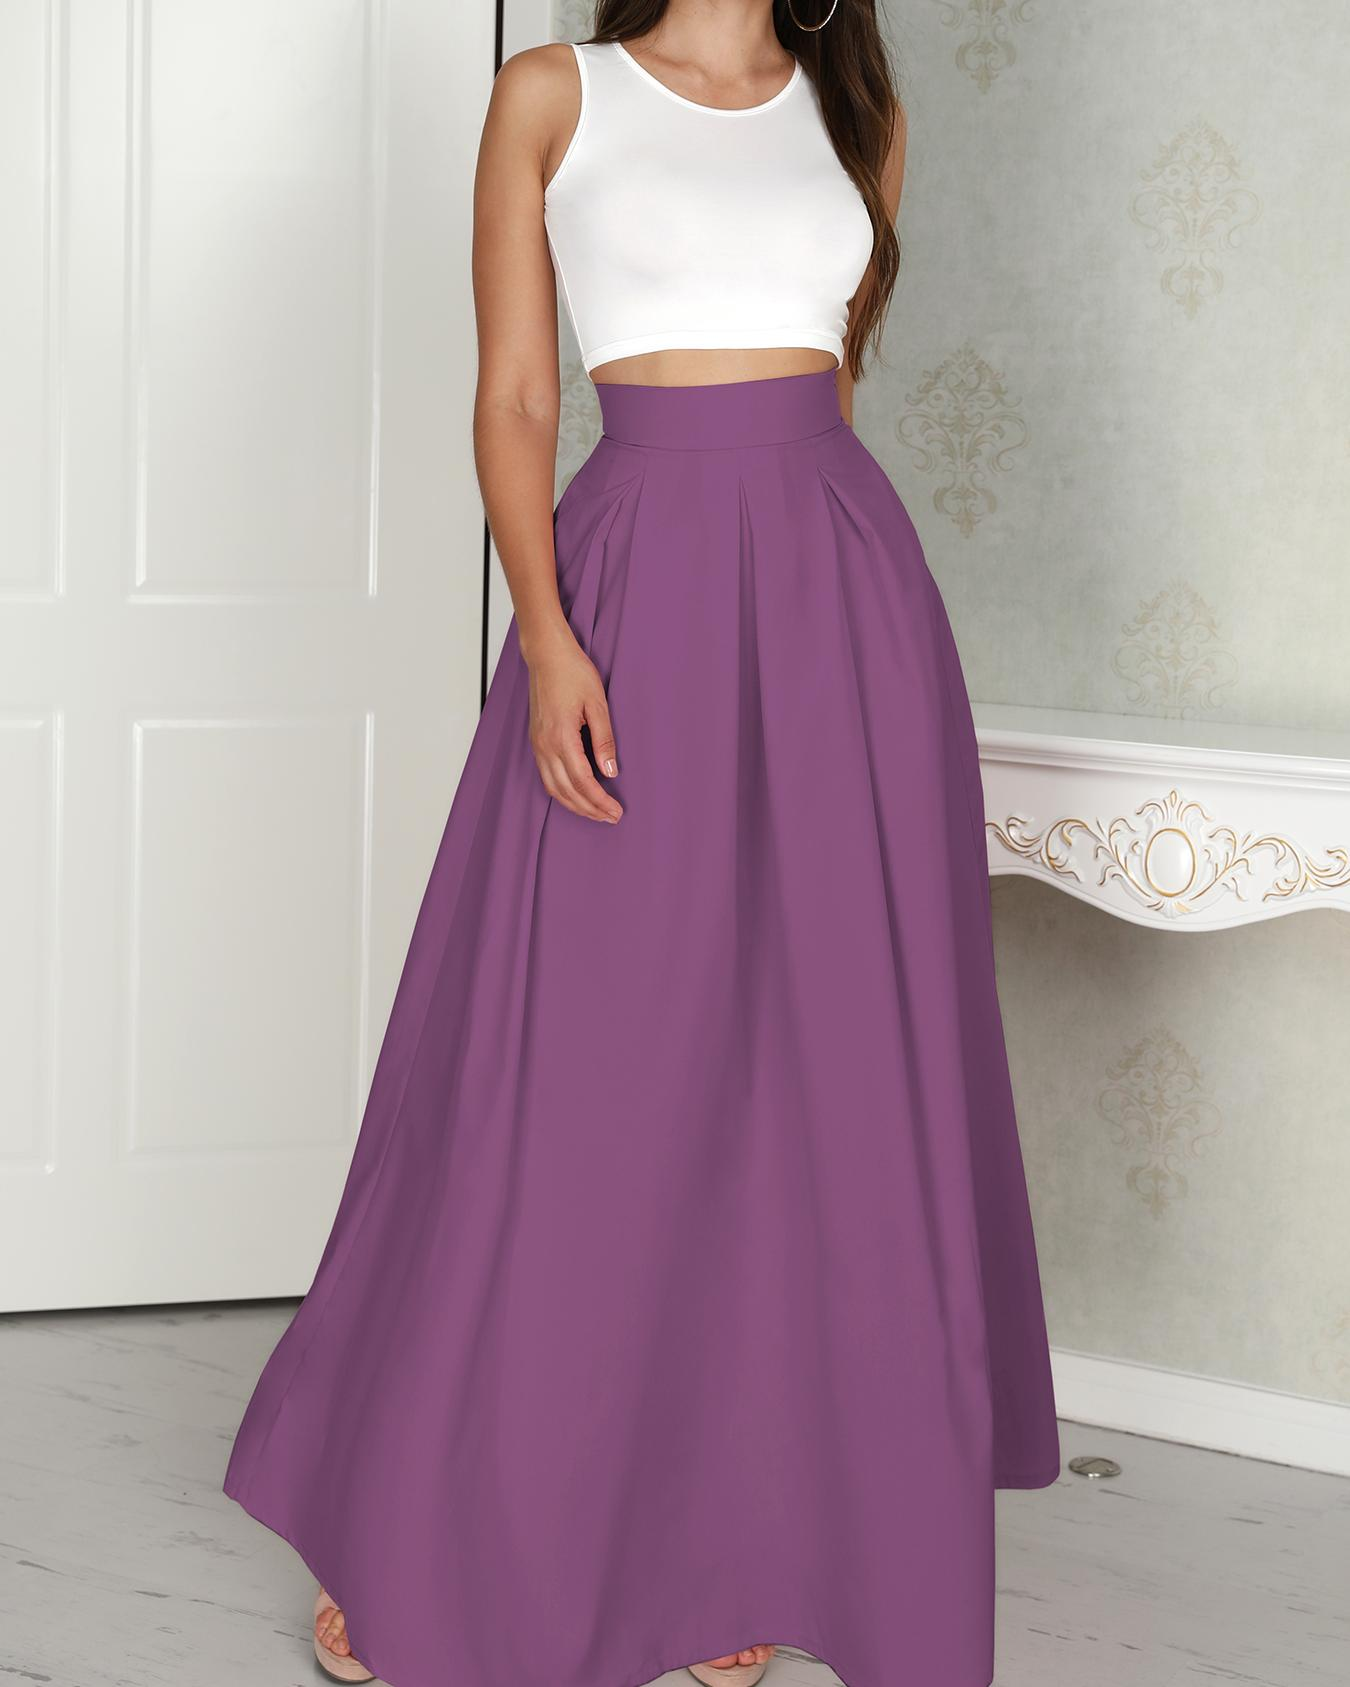 Sleeveless Cropped Top & Pleated Skirt Sets фото